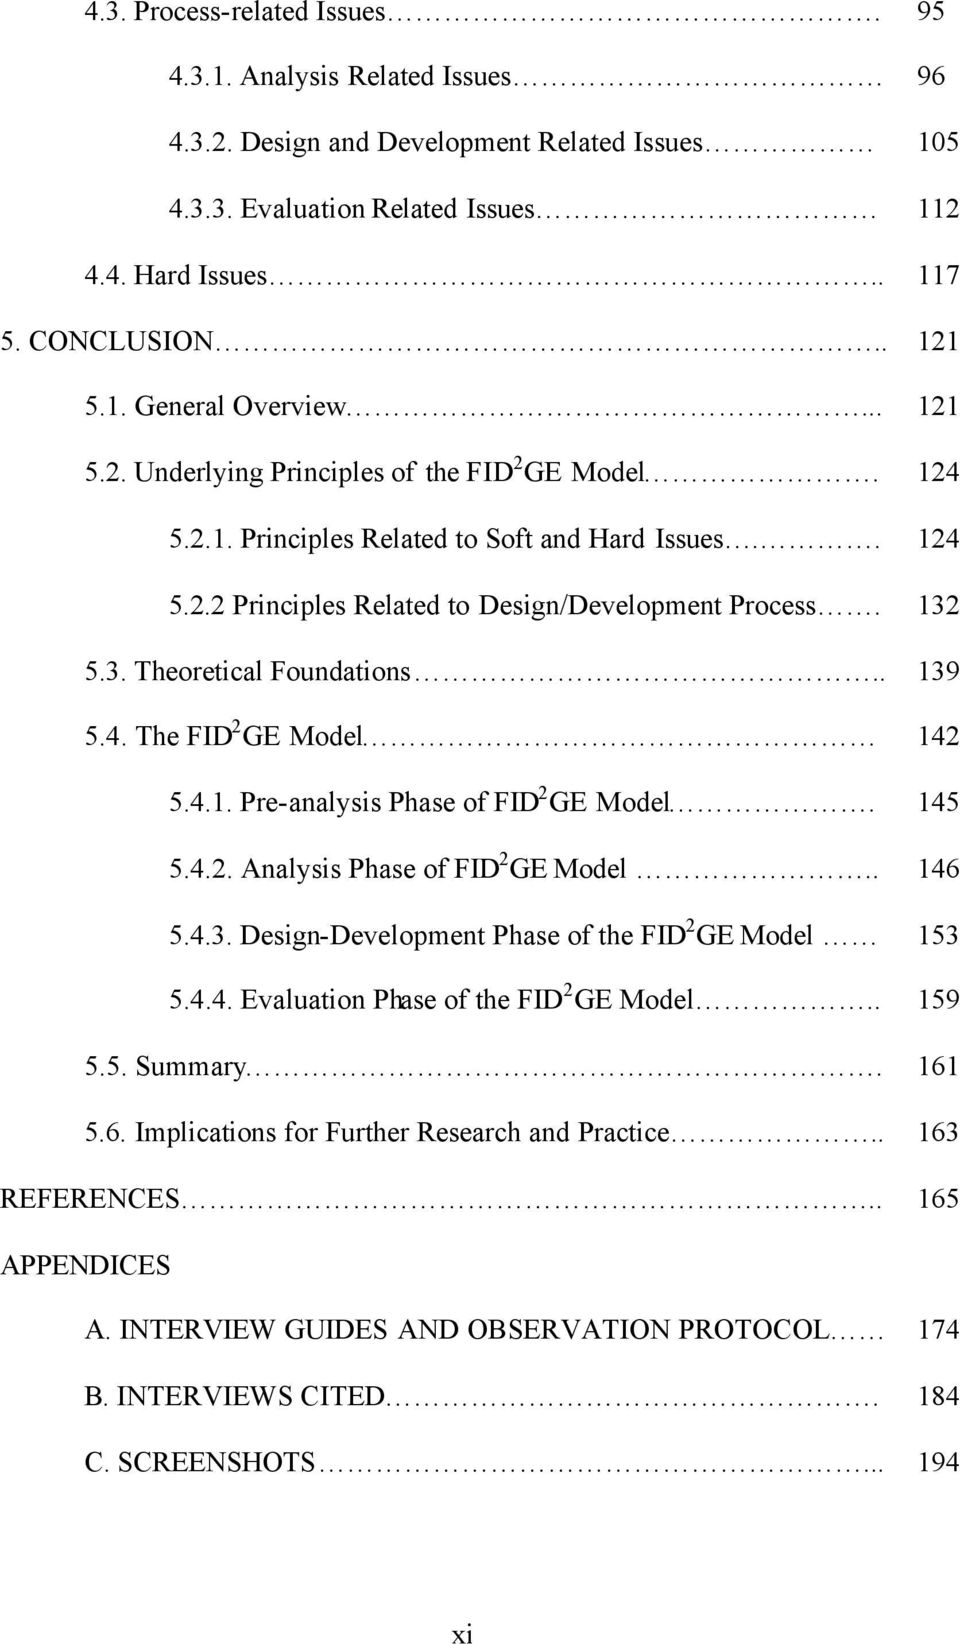 5.3. Theoretical Foundations.. 139 5.4. The FID 2 GE Model 142 5.4.1. Pre-analysis Phase of FID 2 GE Model. 145 5.4.2. Analysis Phase of FID 2 GE Model.. 146 5.4.3. Design-Development Phase of the FID 2 GE Model 153 5.